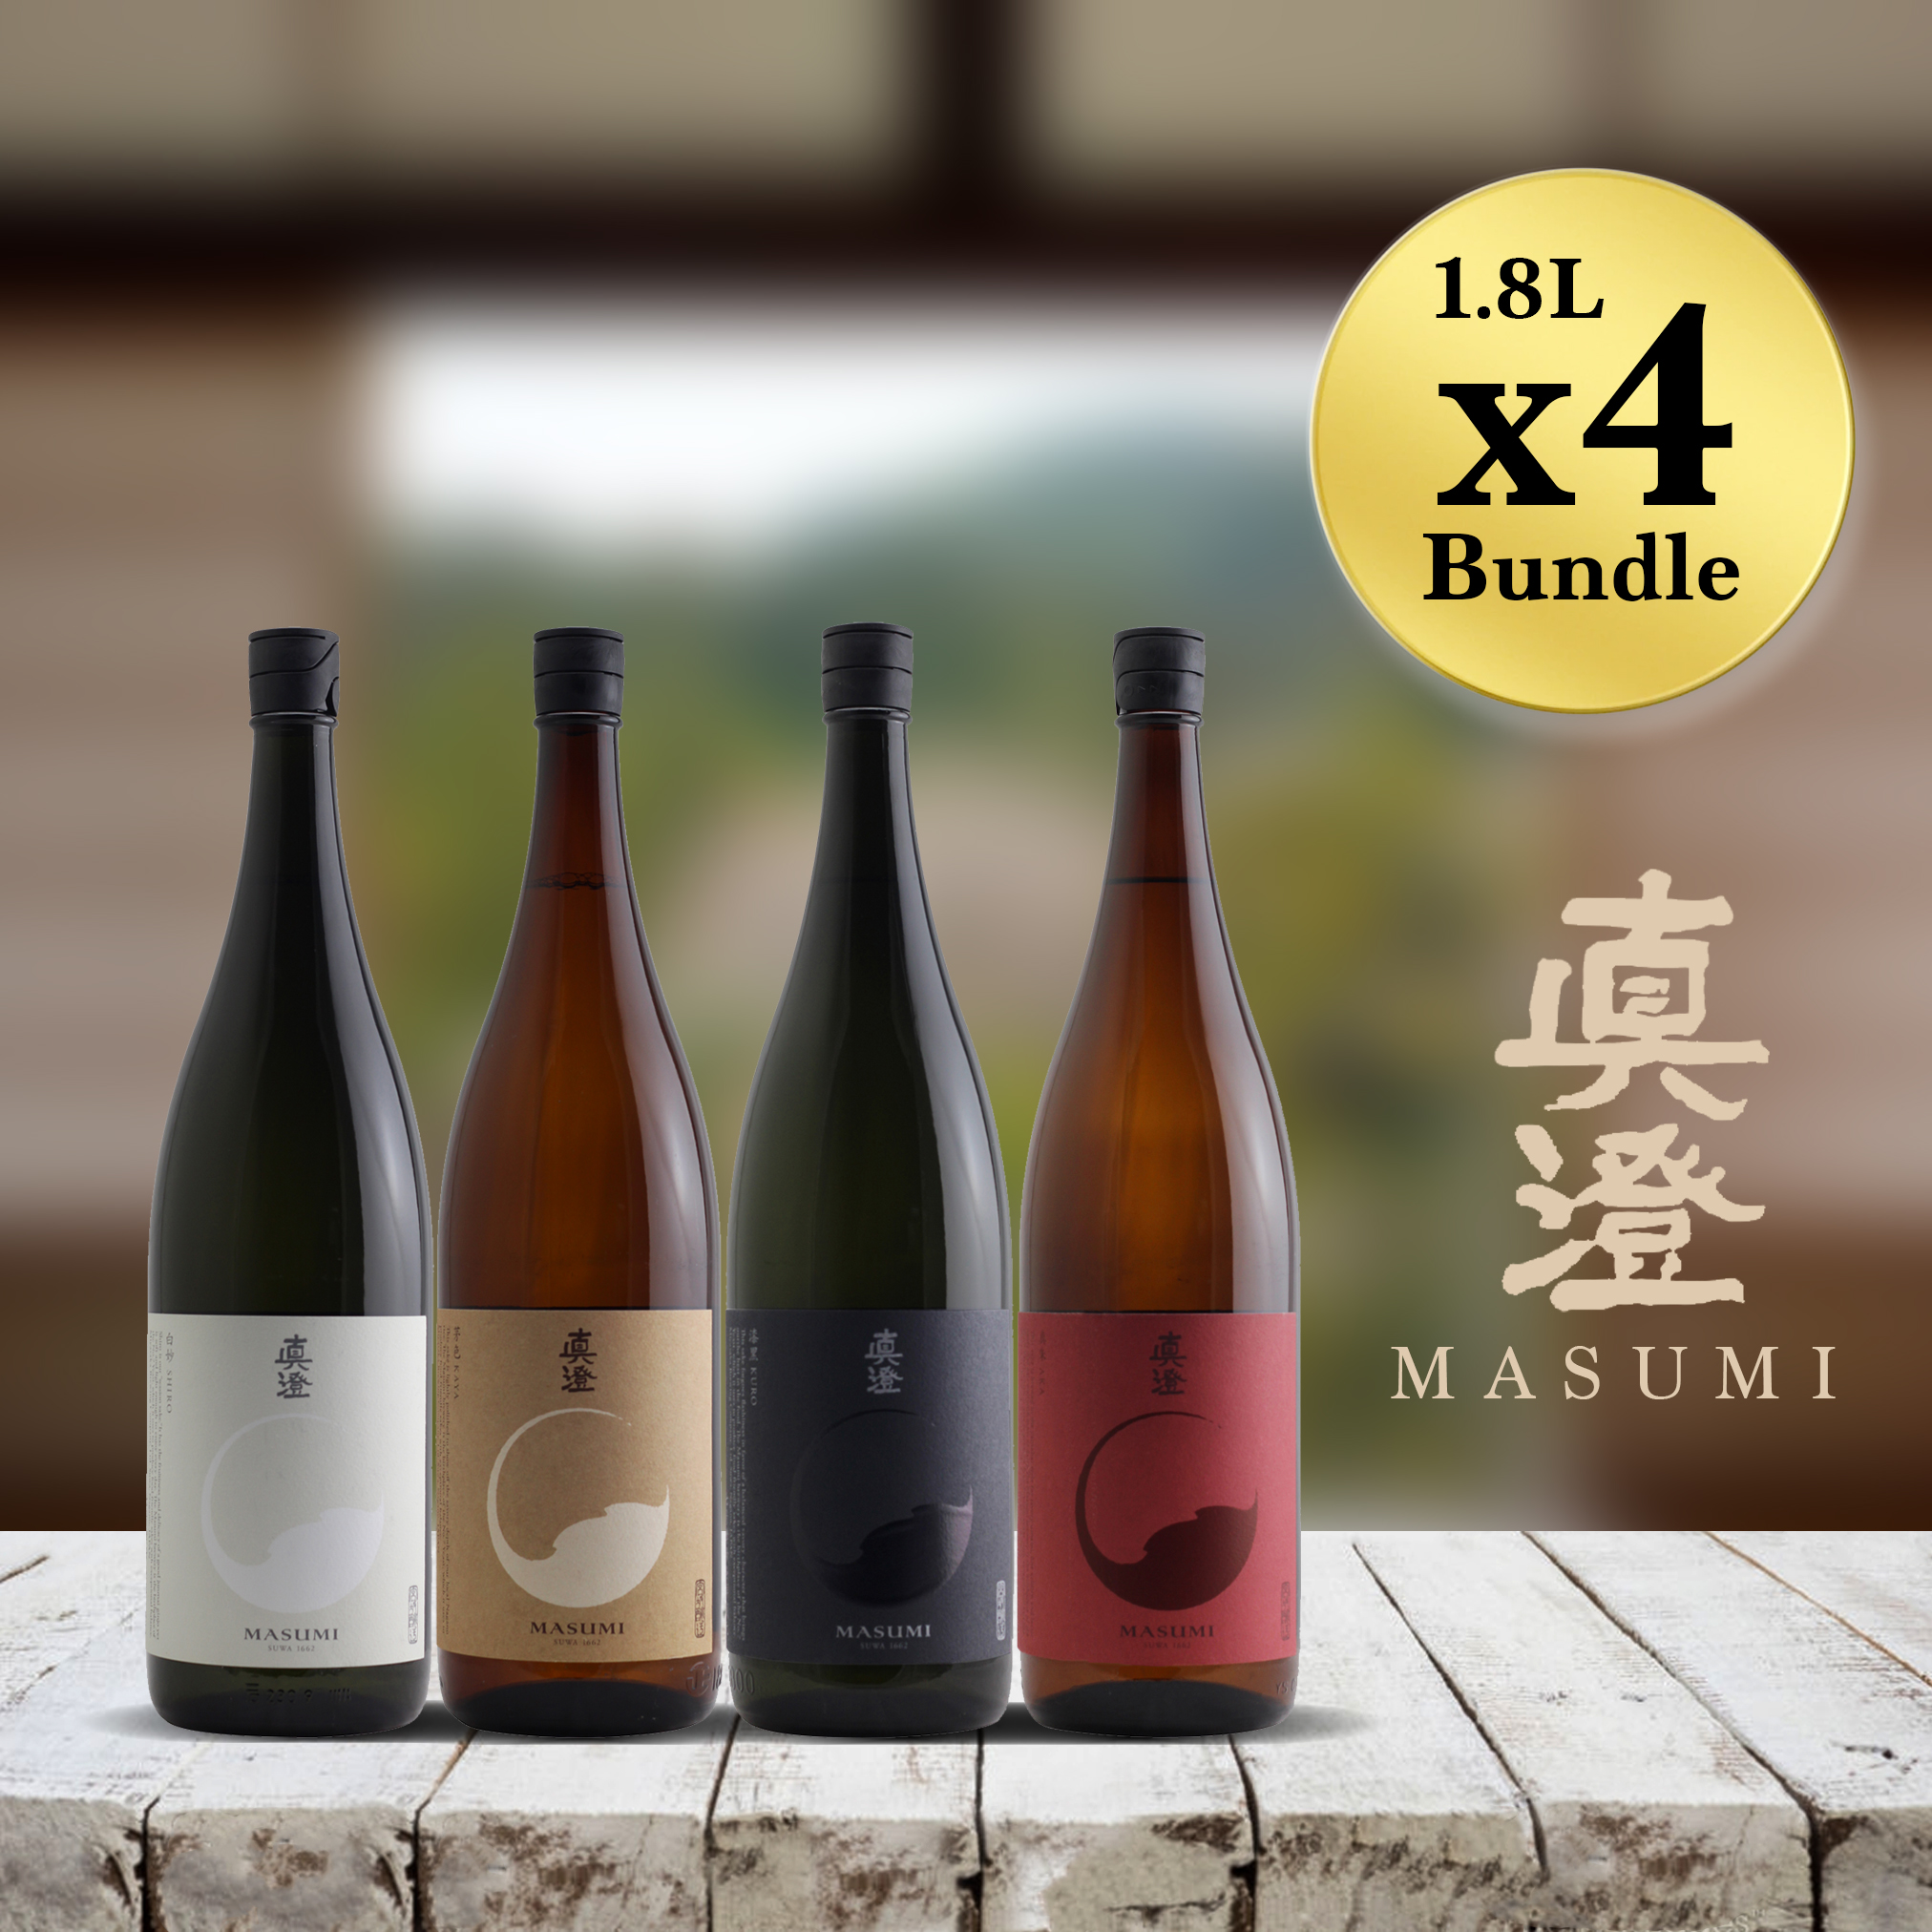 Masumi Sake - New Four Color  Flagship Bundle 1.8L X4